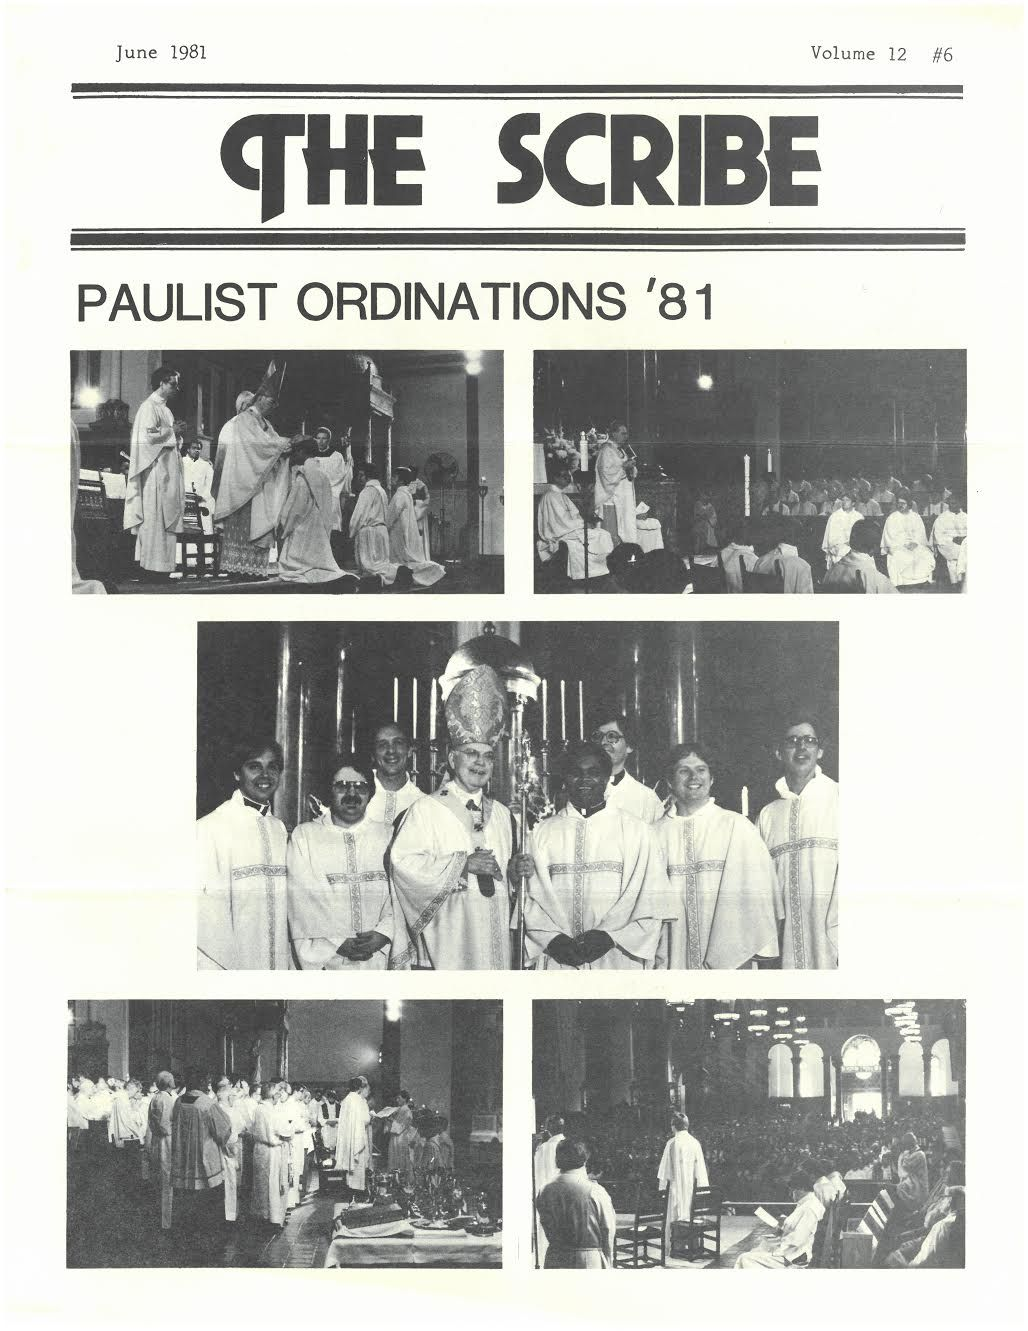 Views from the Paulist Fathers Ordinations Mass in 1981 at